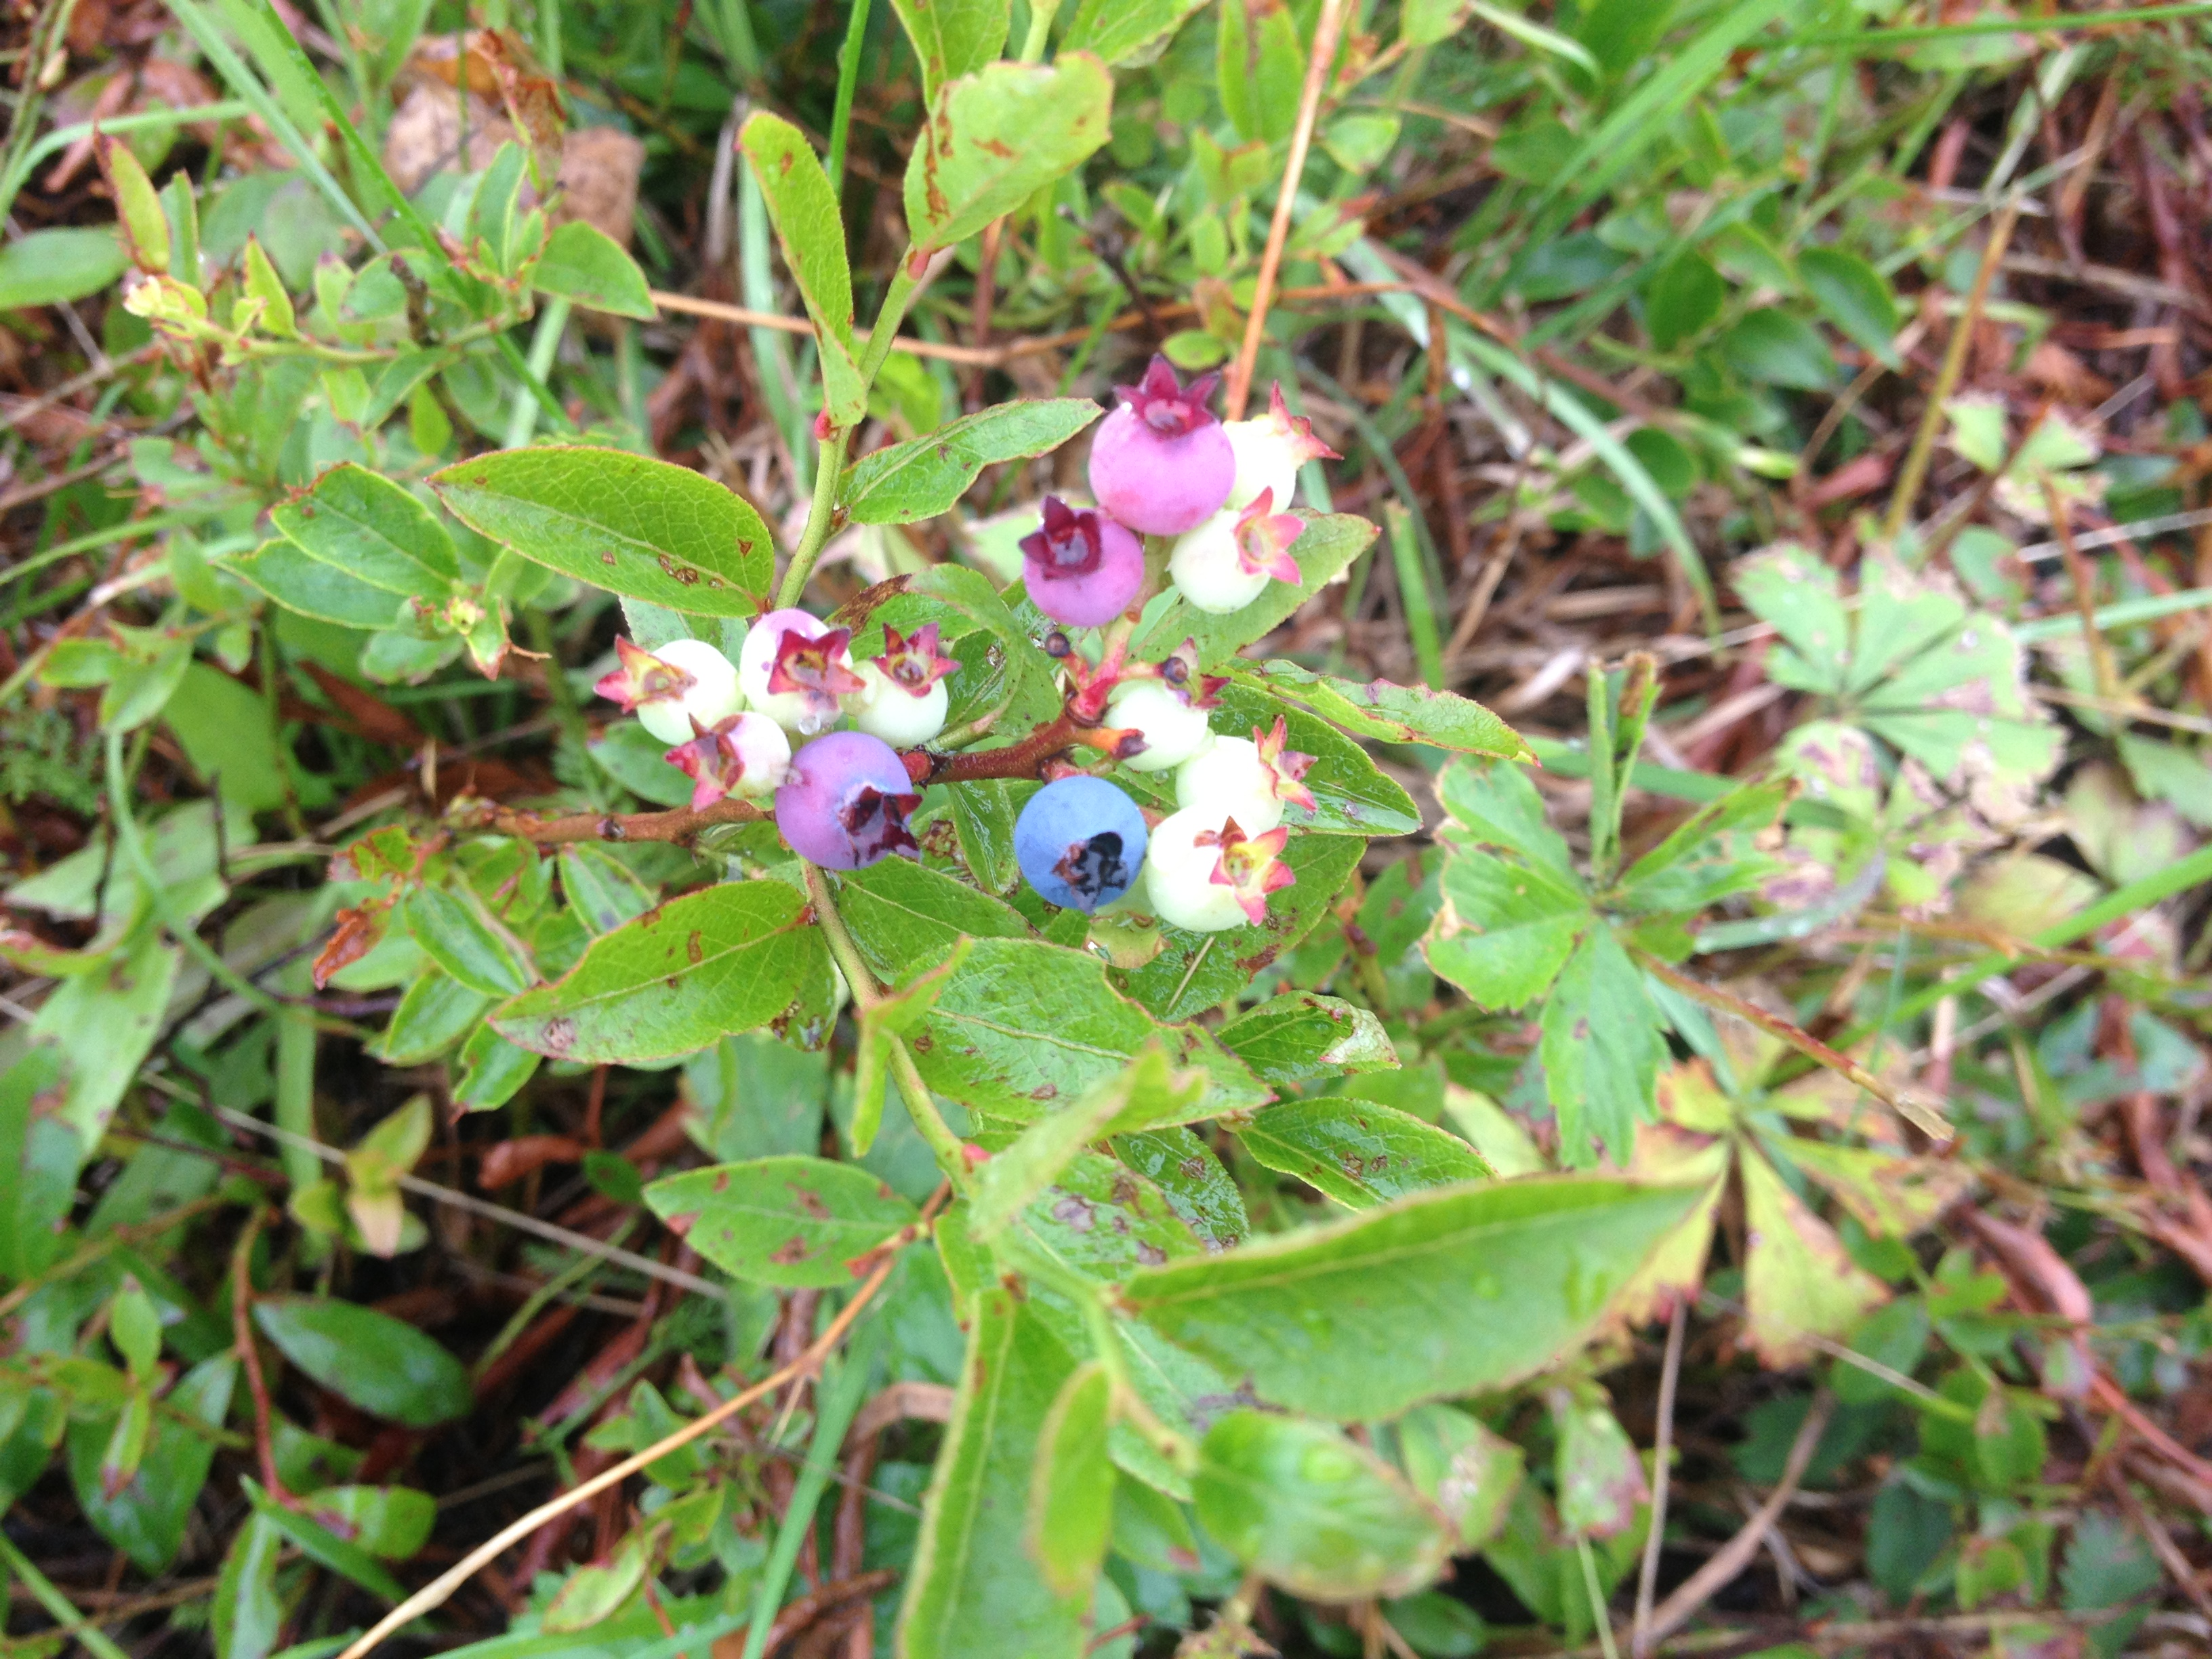 As the blueberries ripen, they colors change from green, to yellow with a slight pink tone at the top, then the deep blue. These berries have a few more weeks before they are ready to pick.